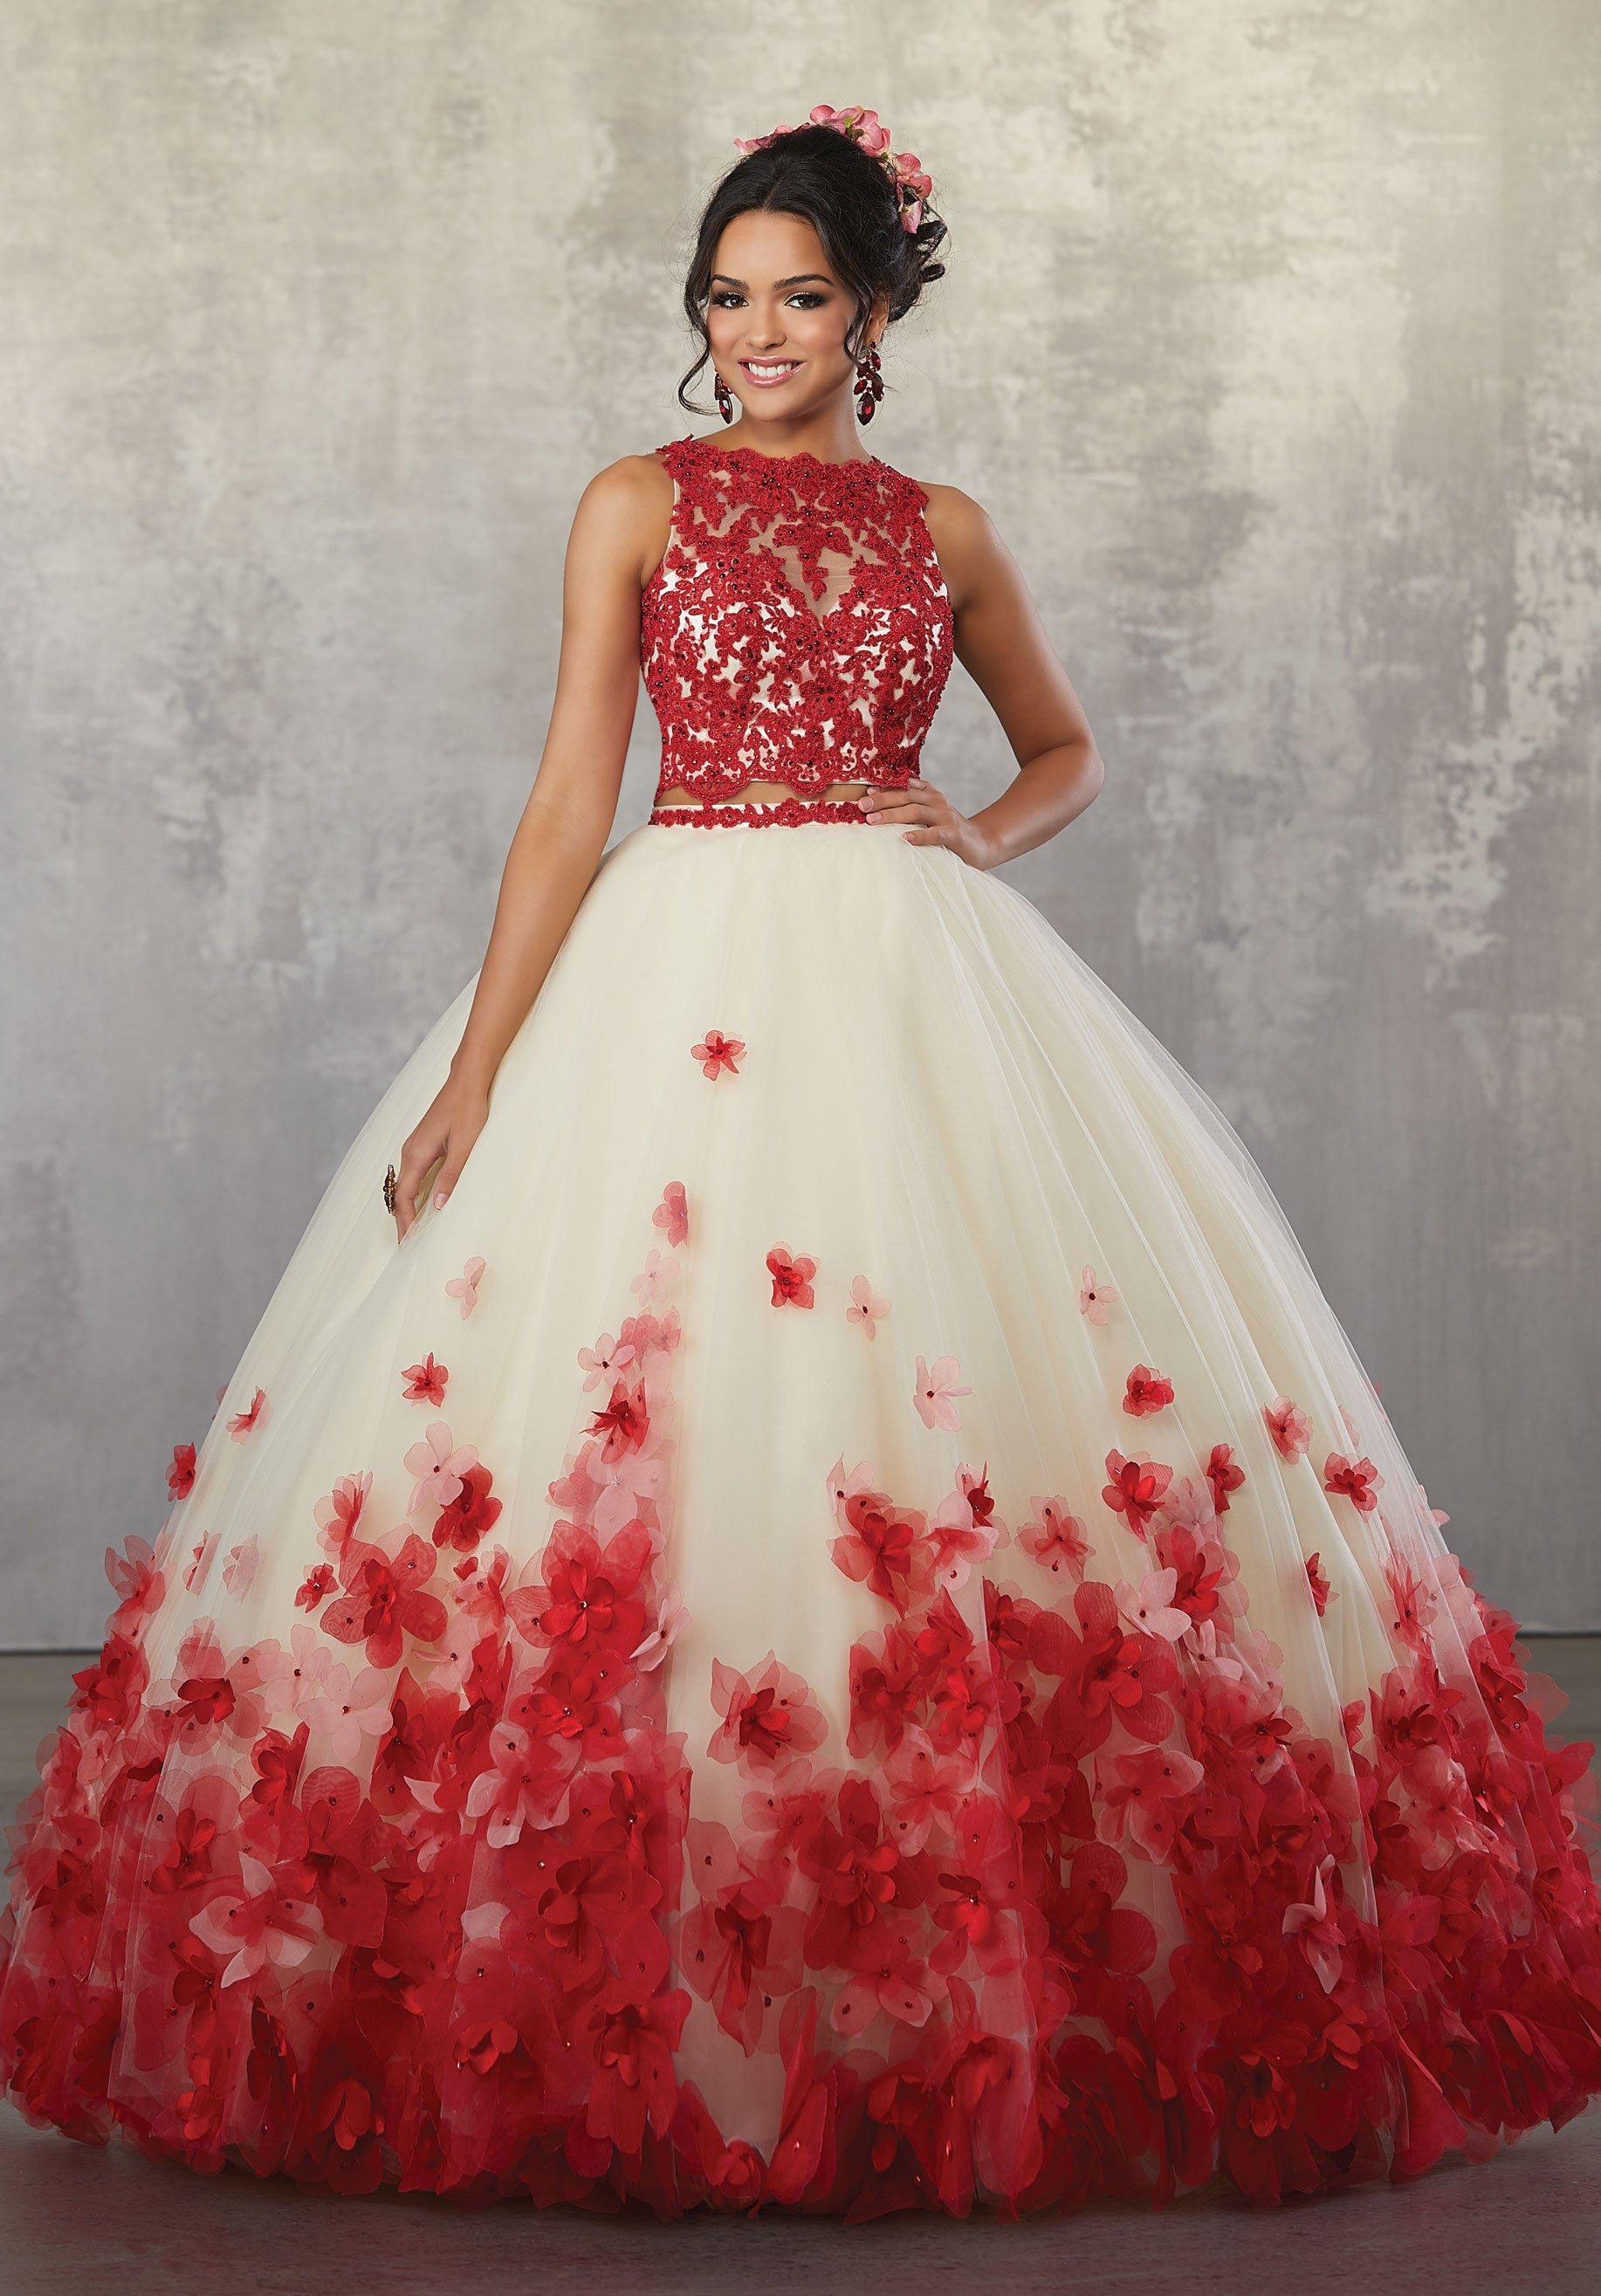 78064 Two-Piece Quinceanera Gown with Beaded Lace on Net Top and Ballgown Skirt